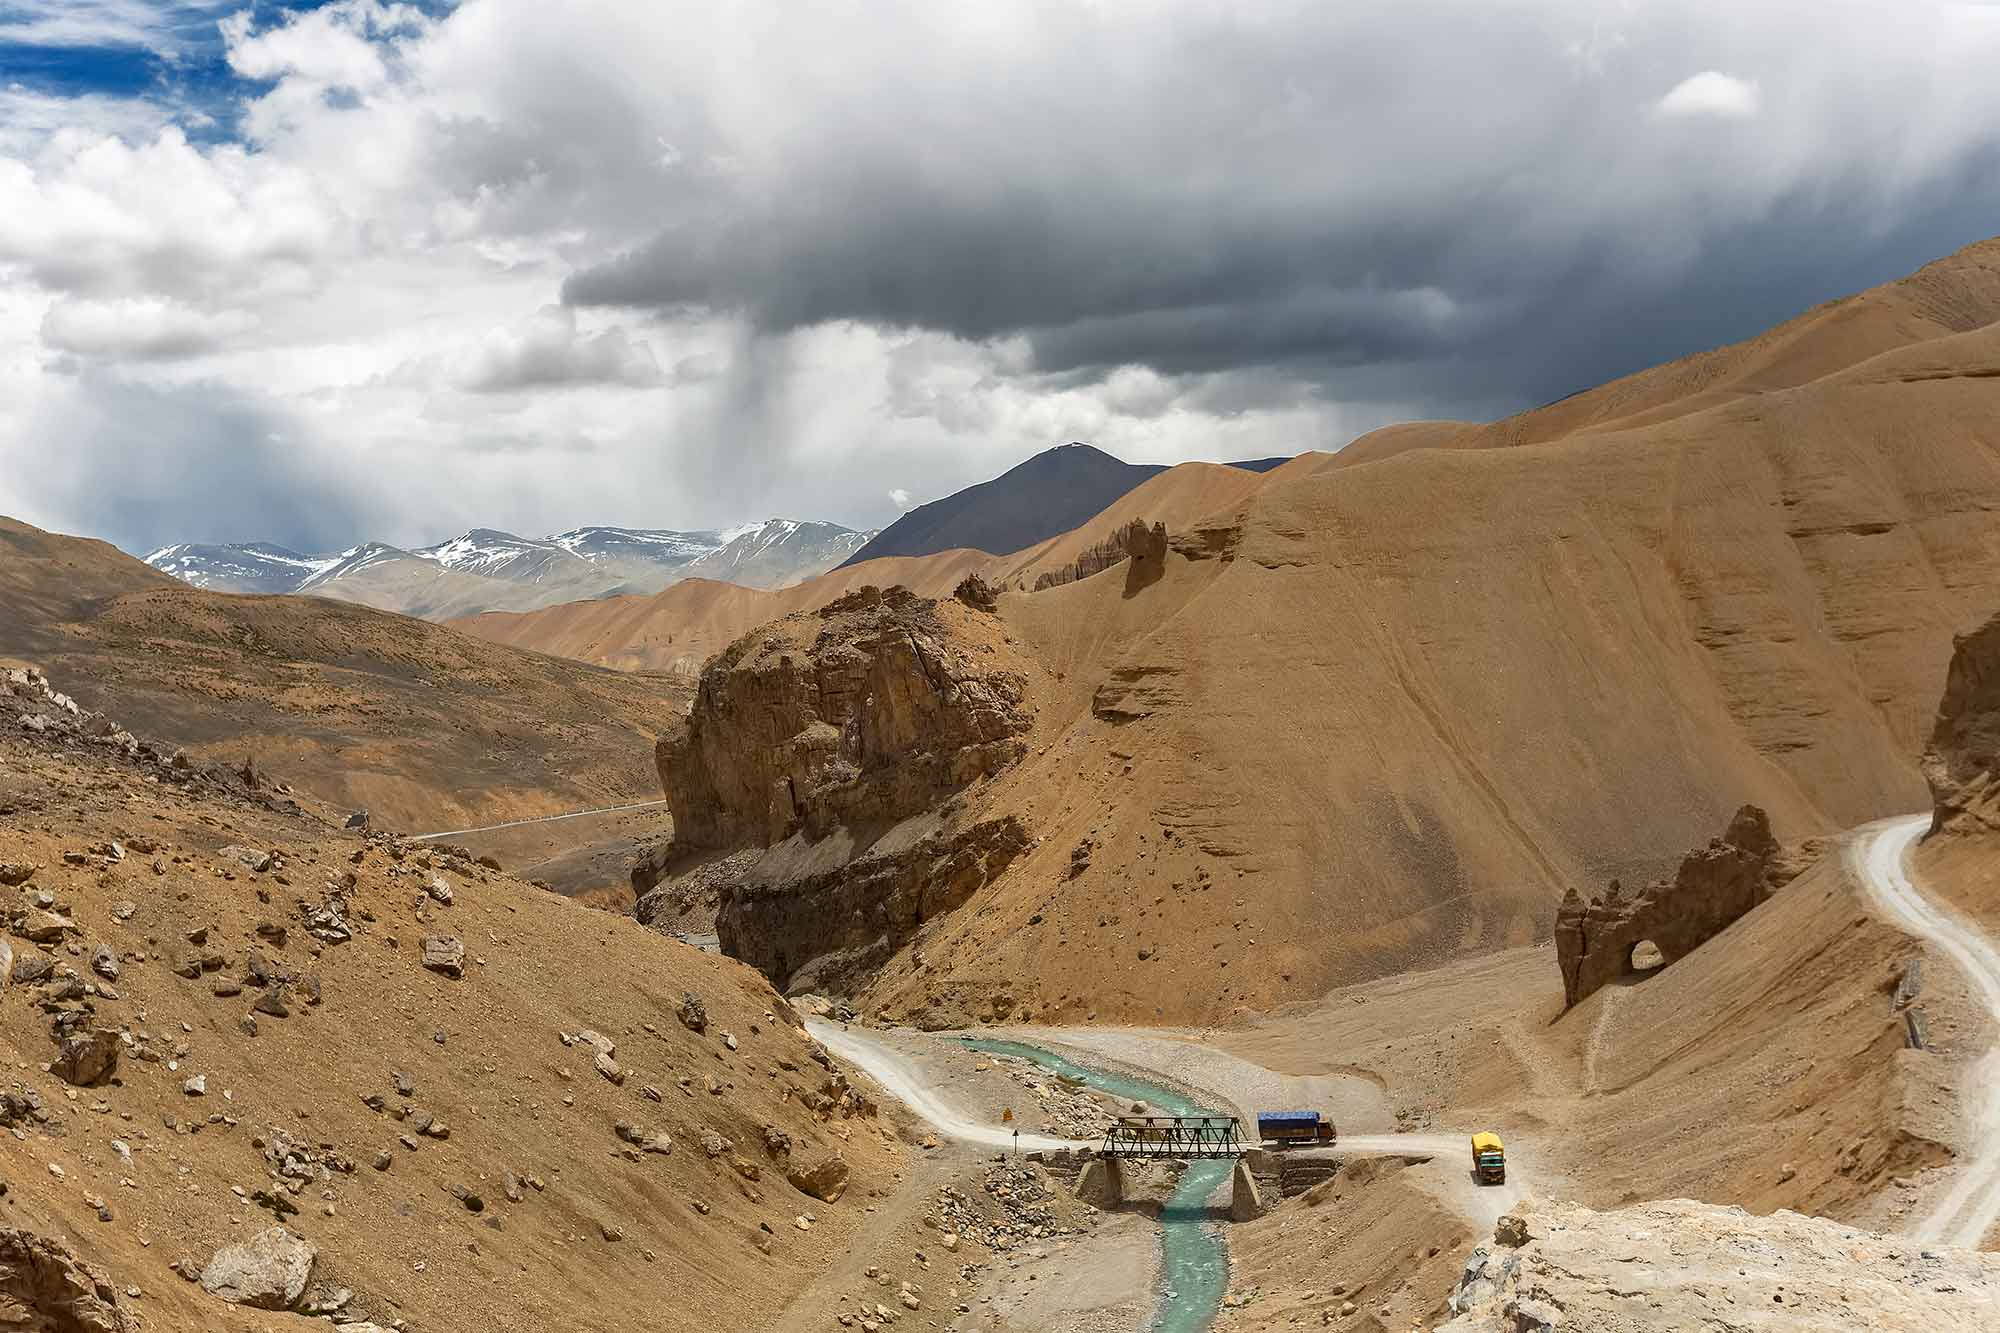 leh-manali-highway-kashmir-ladakh-india-natural-arch